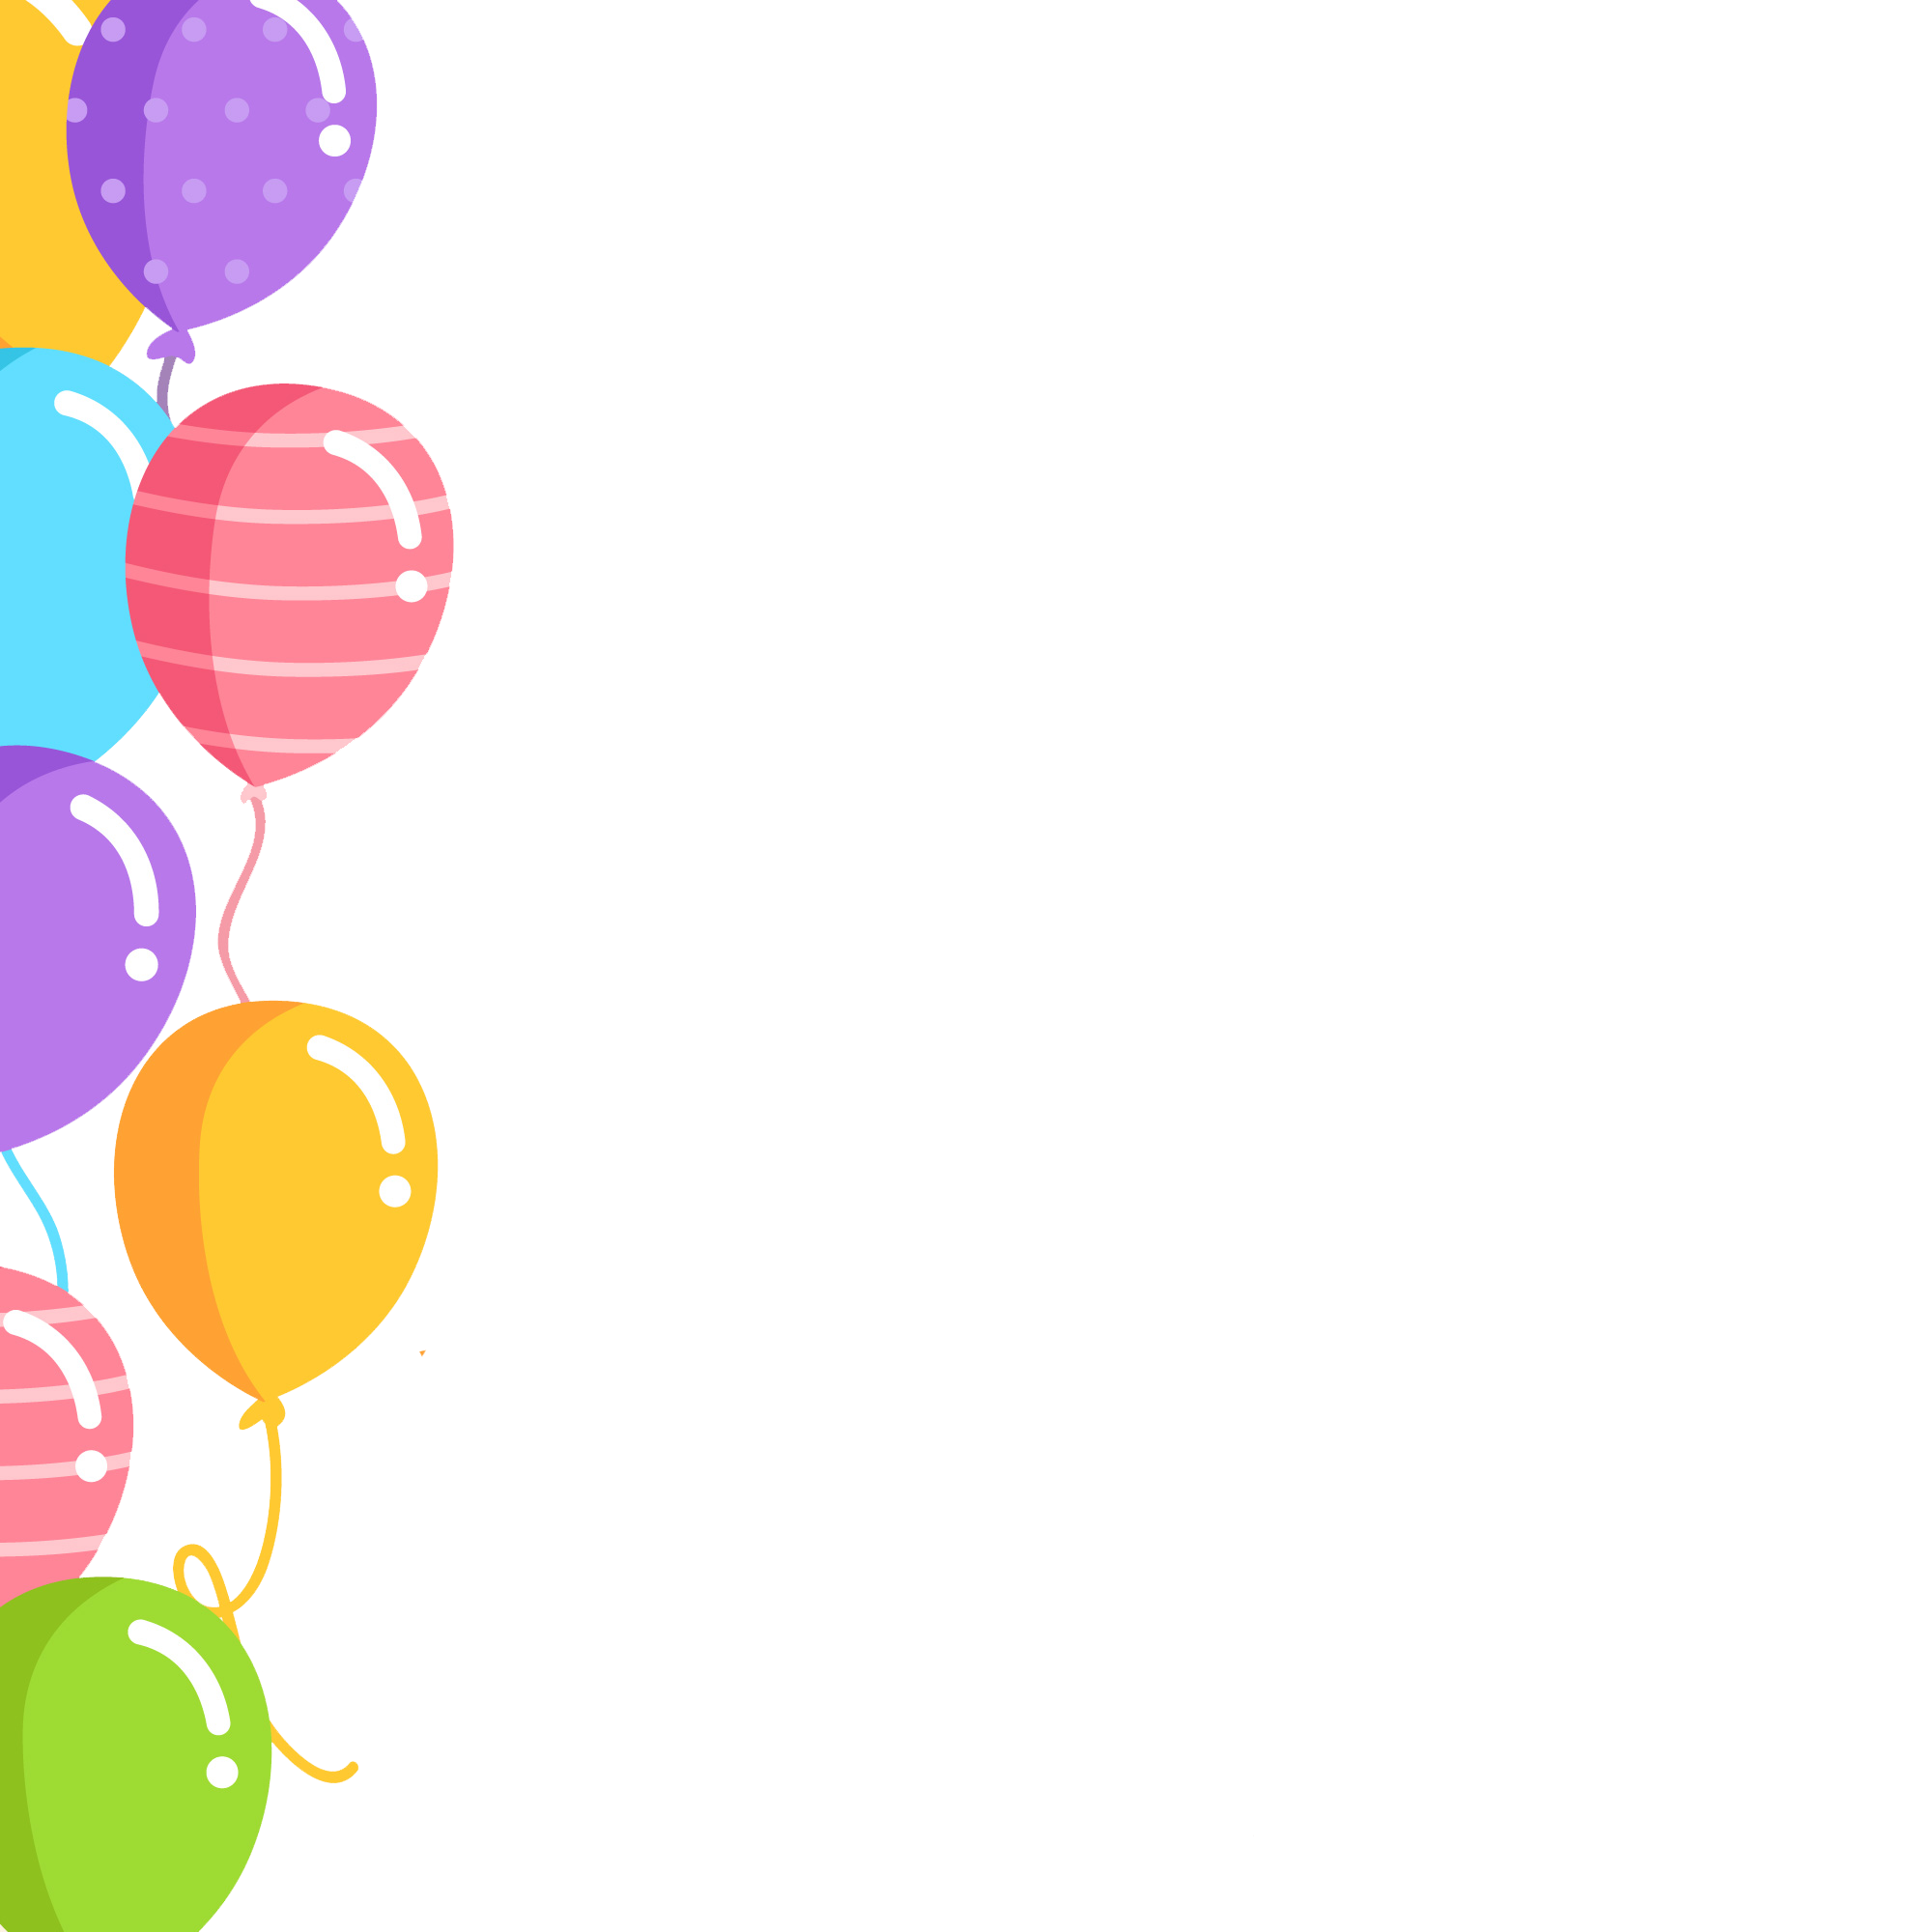 Balloon clipart borders.